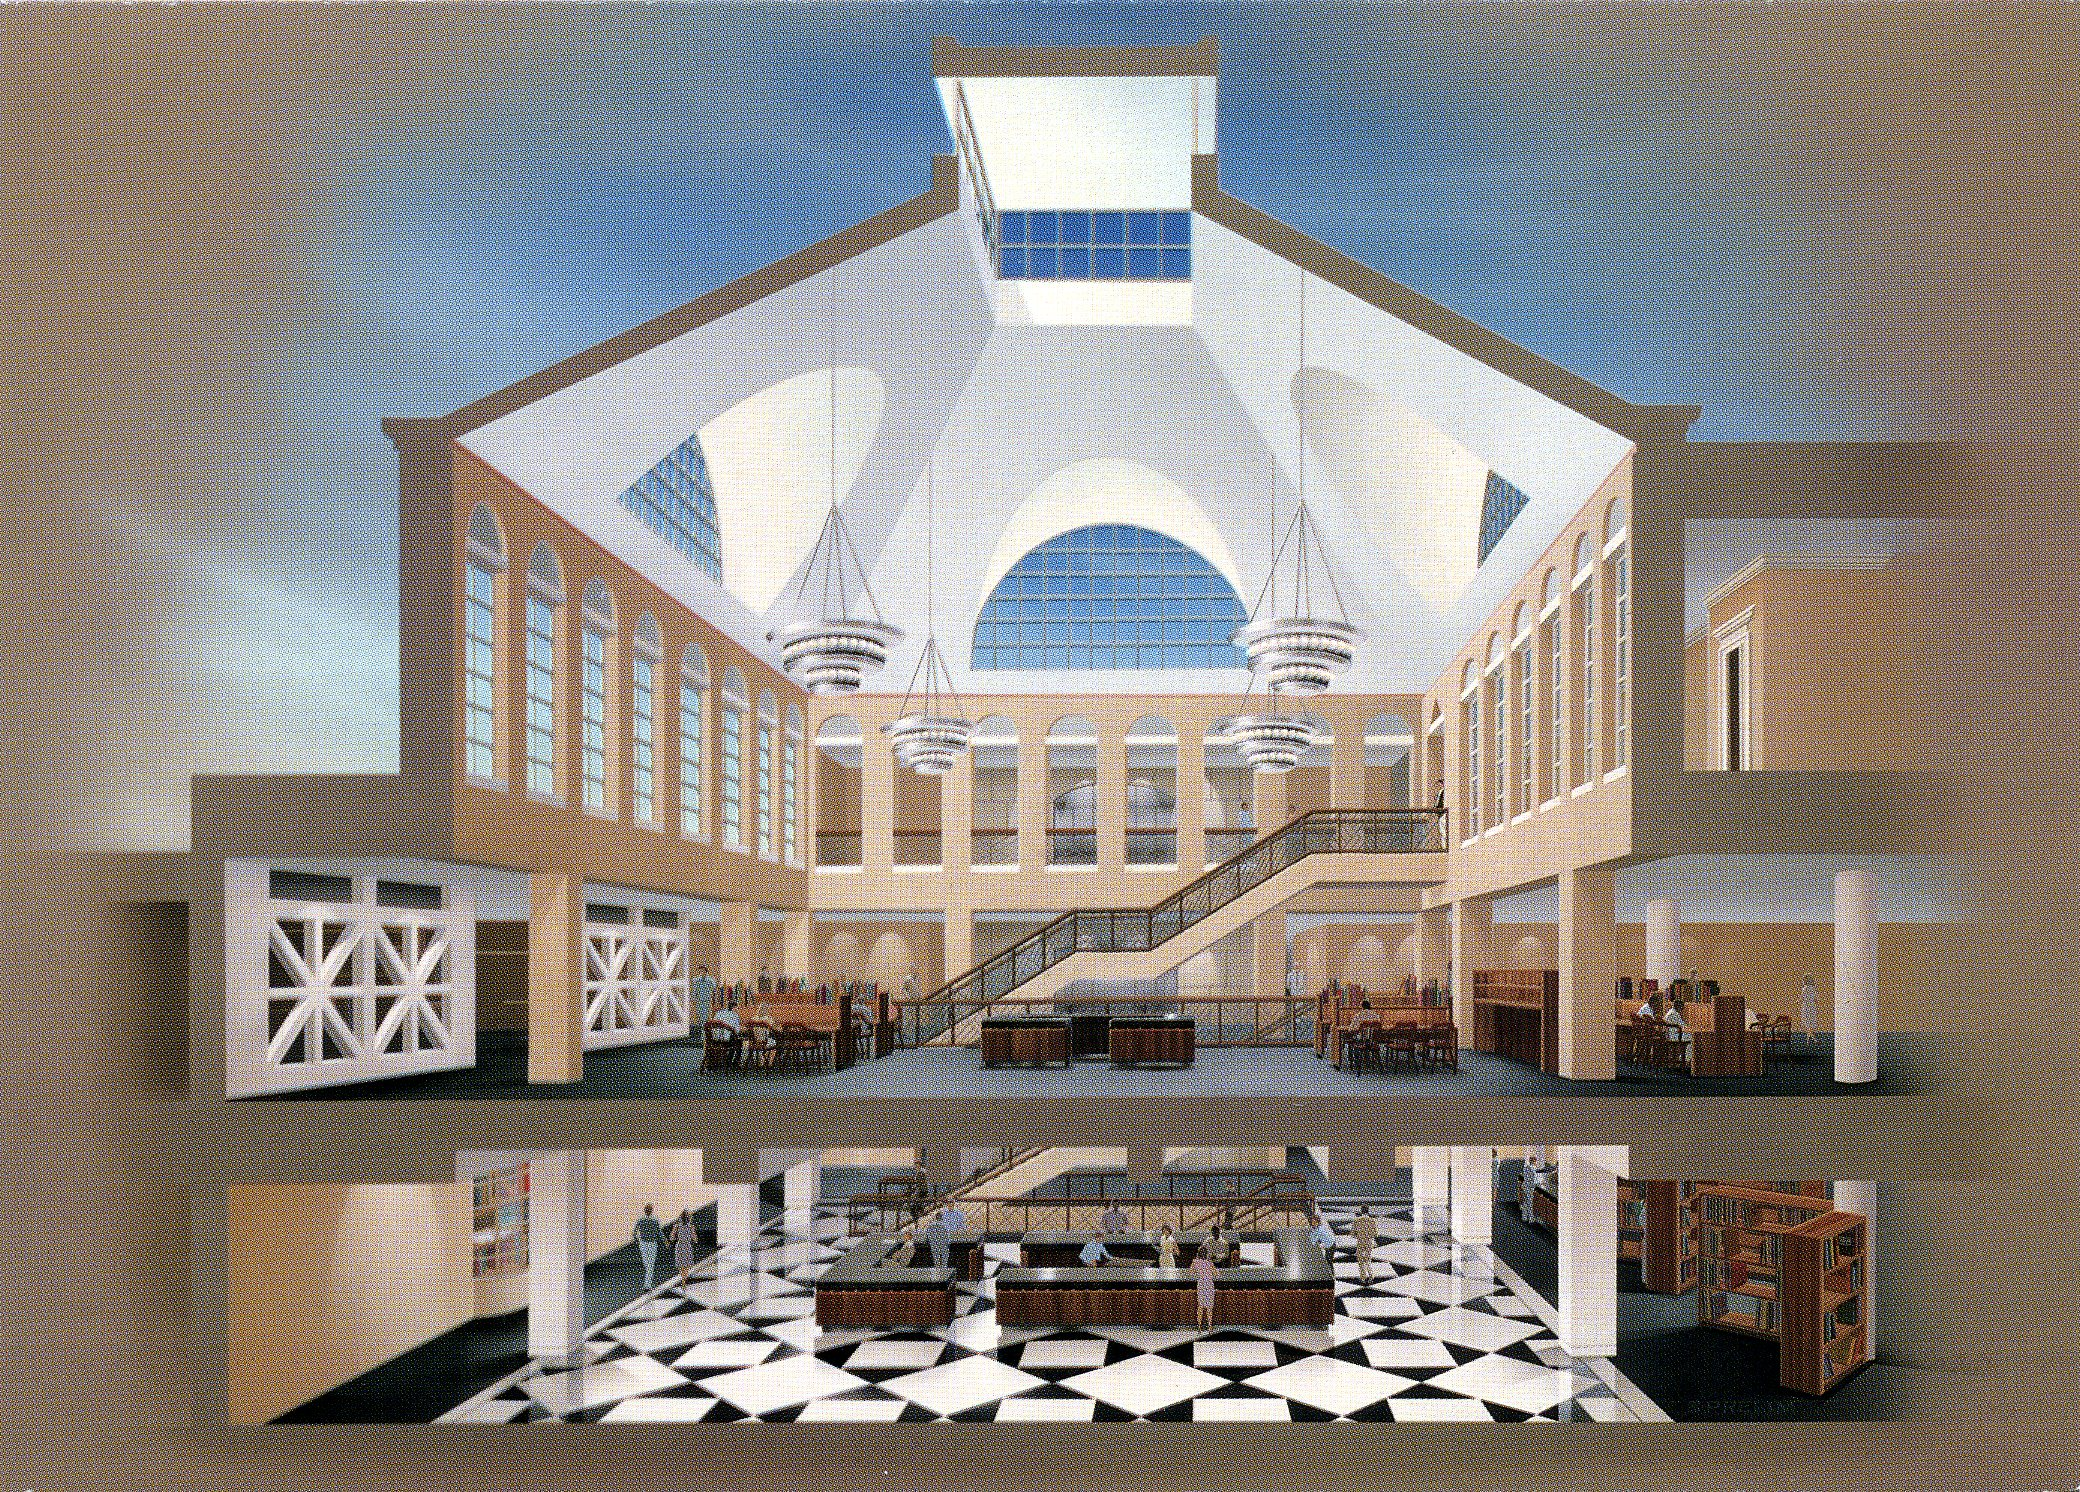 Drawing of interior of new building